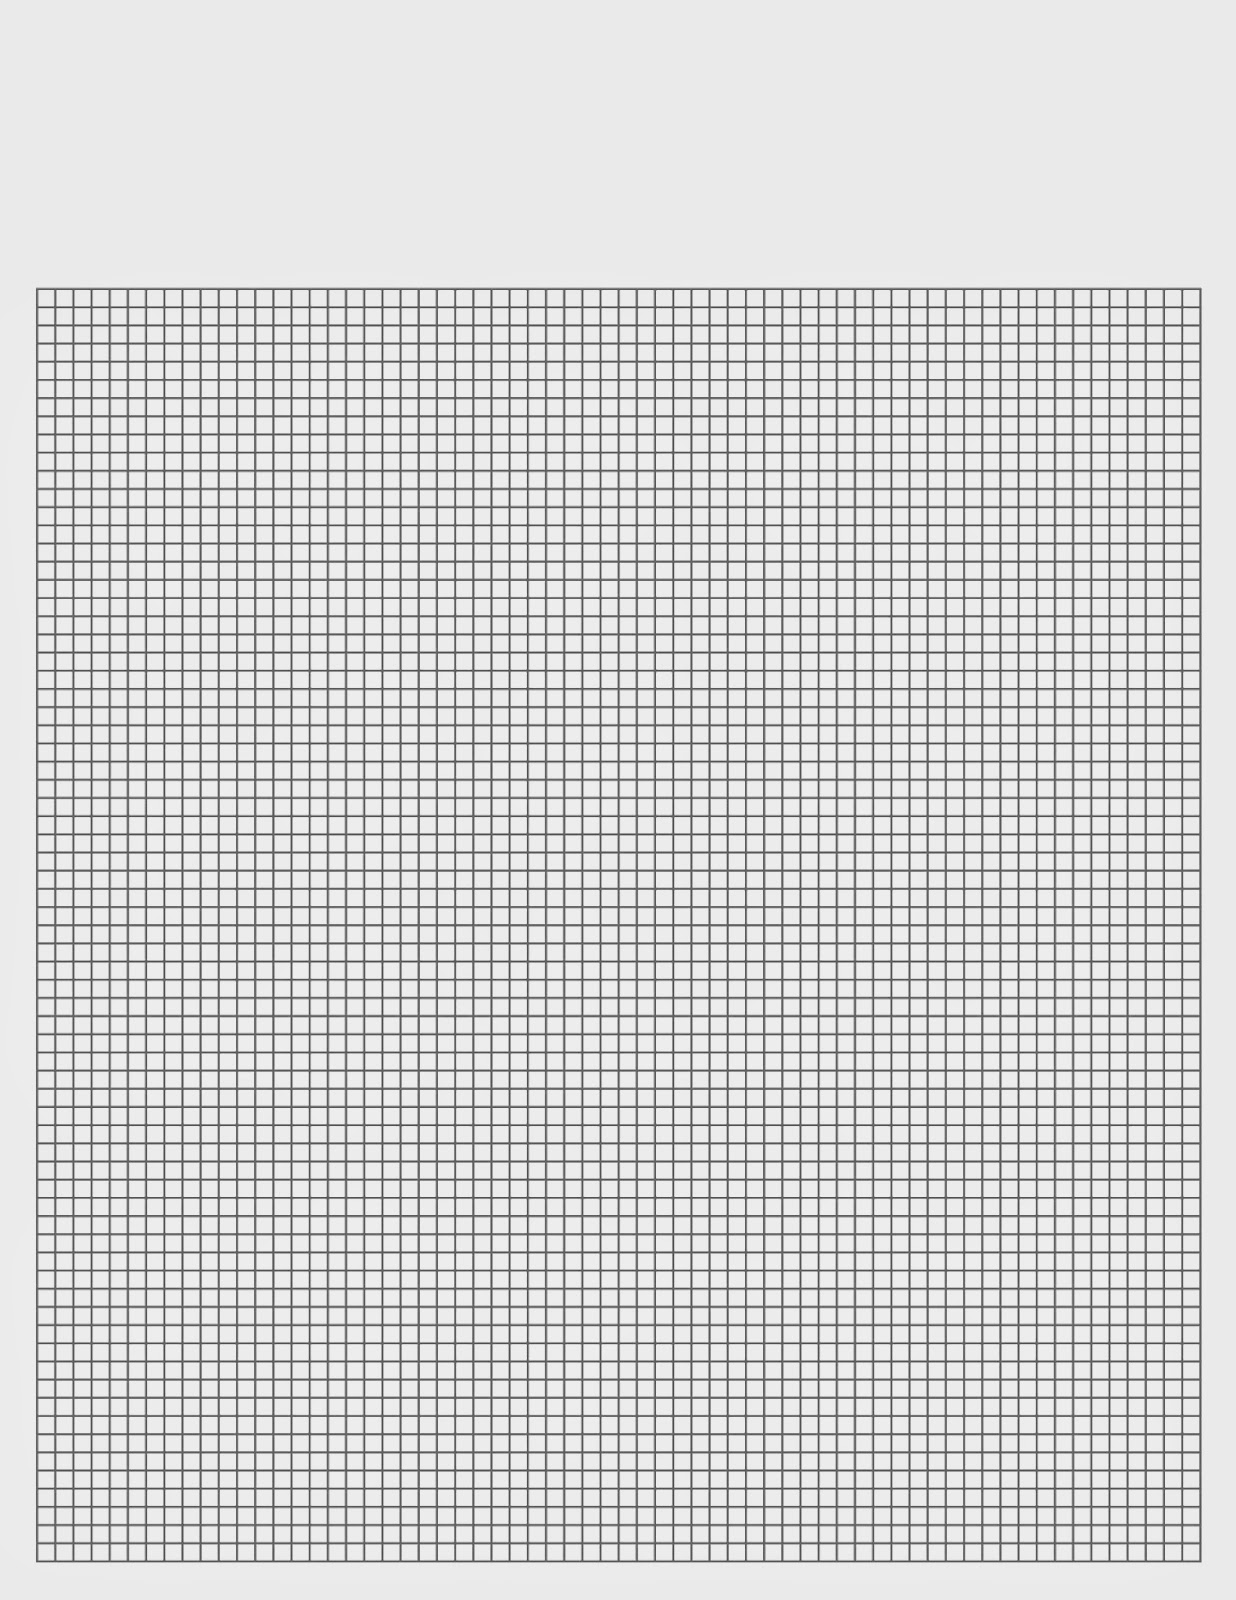 8.5 X 11 Graph Paper 12 X 18 Table